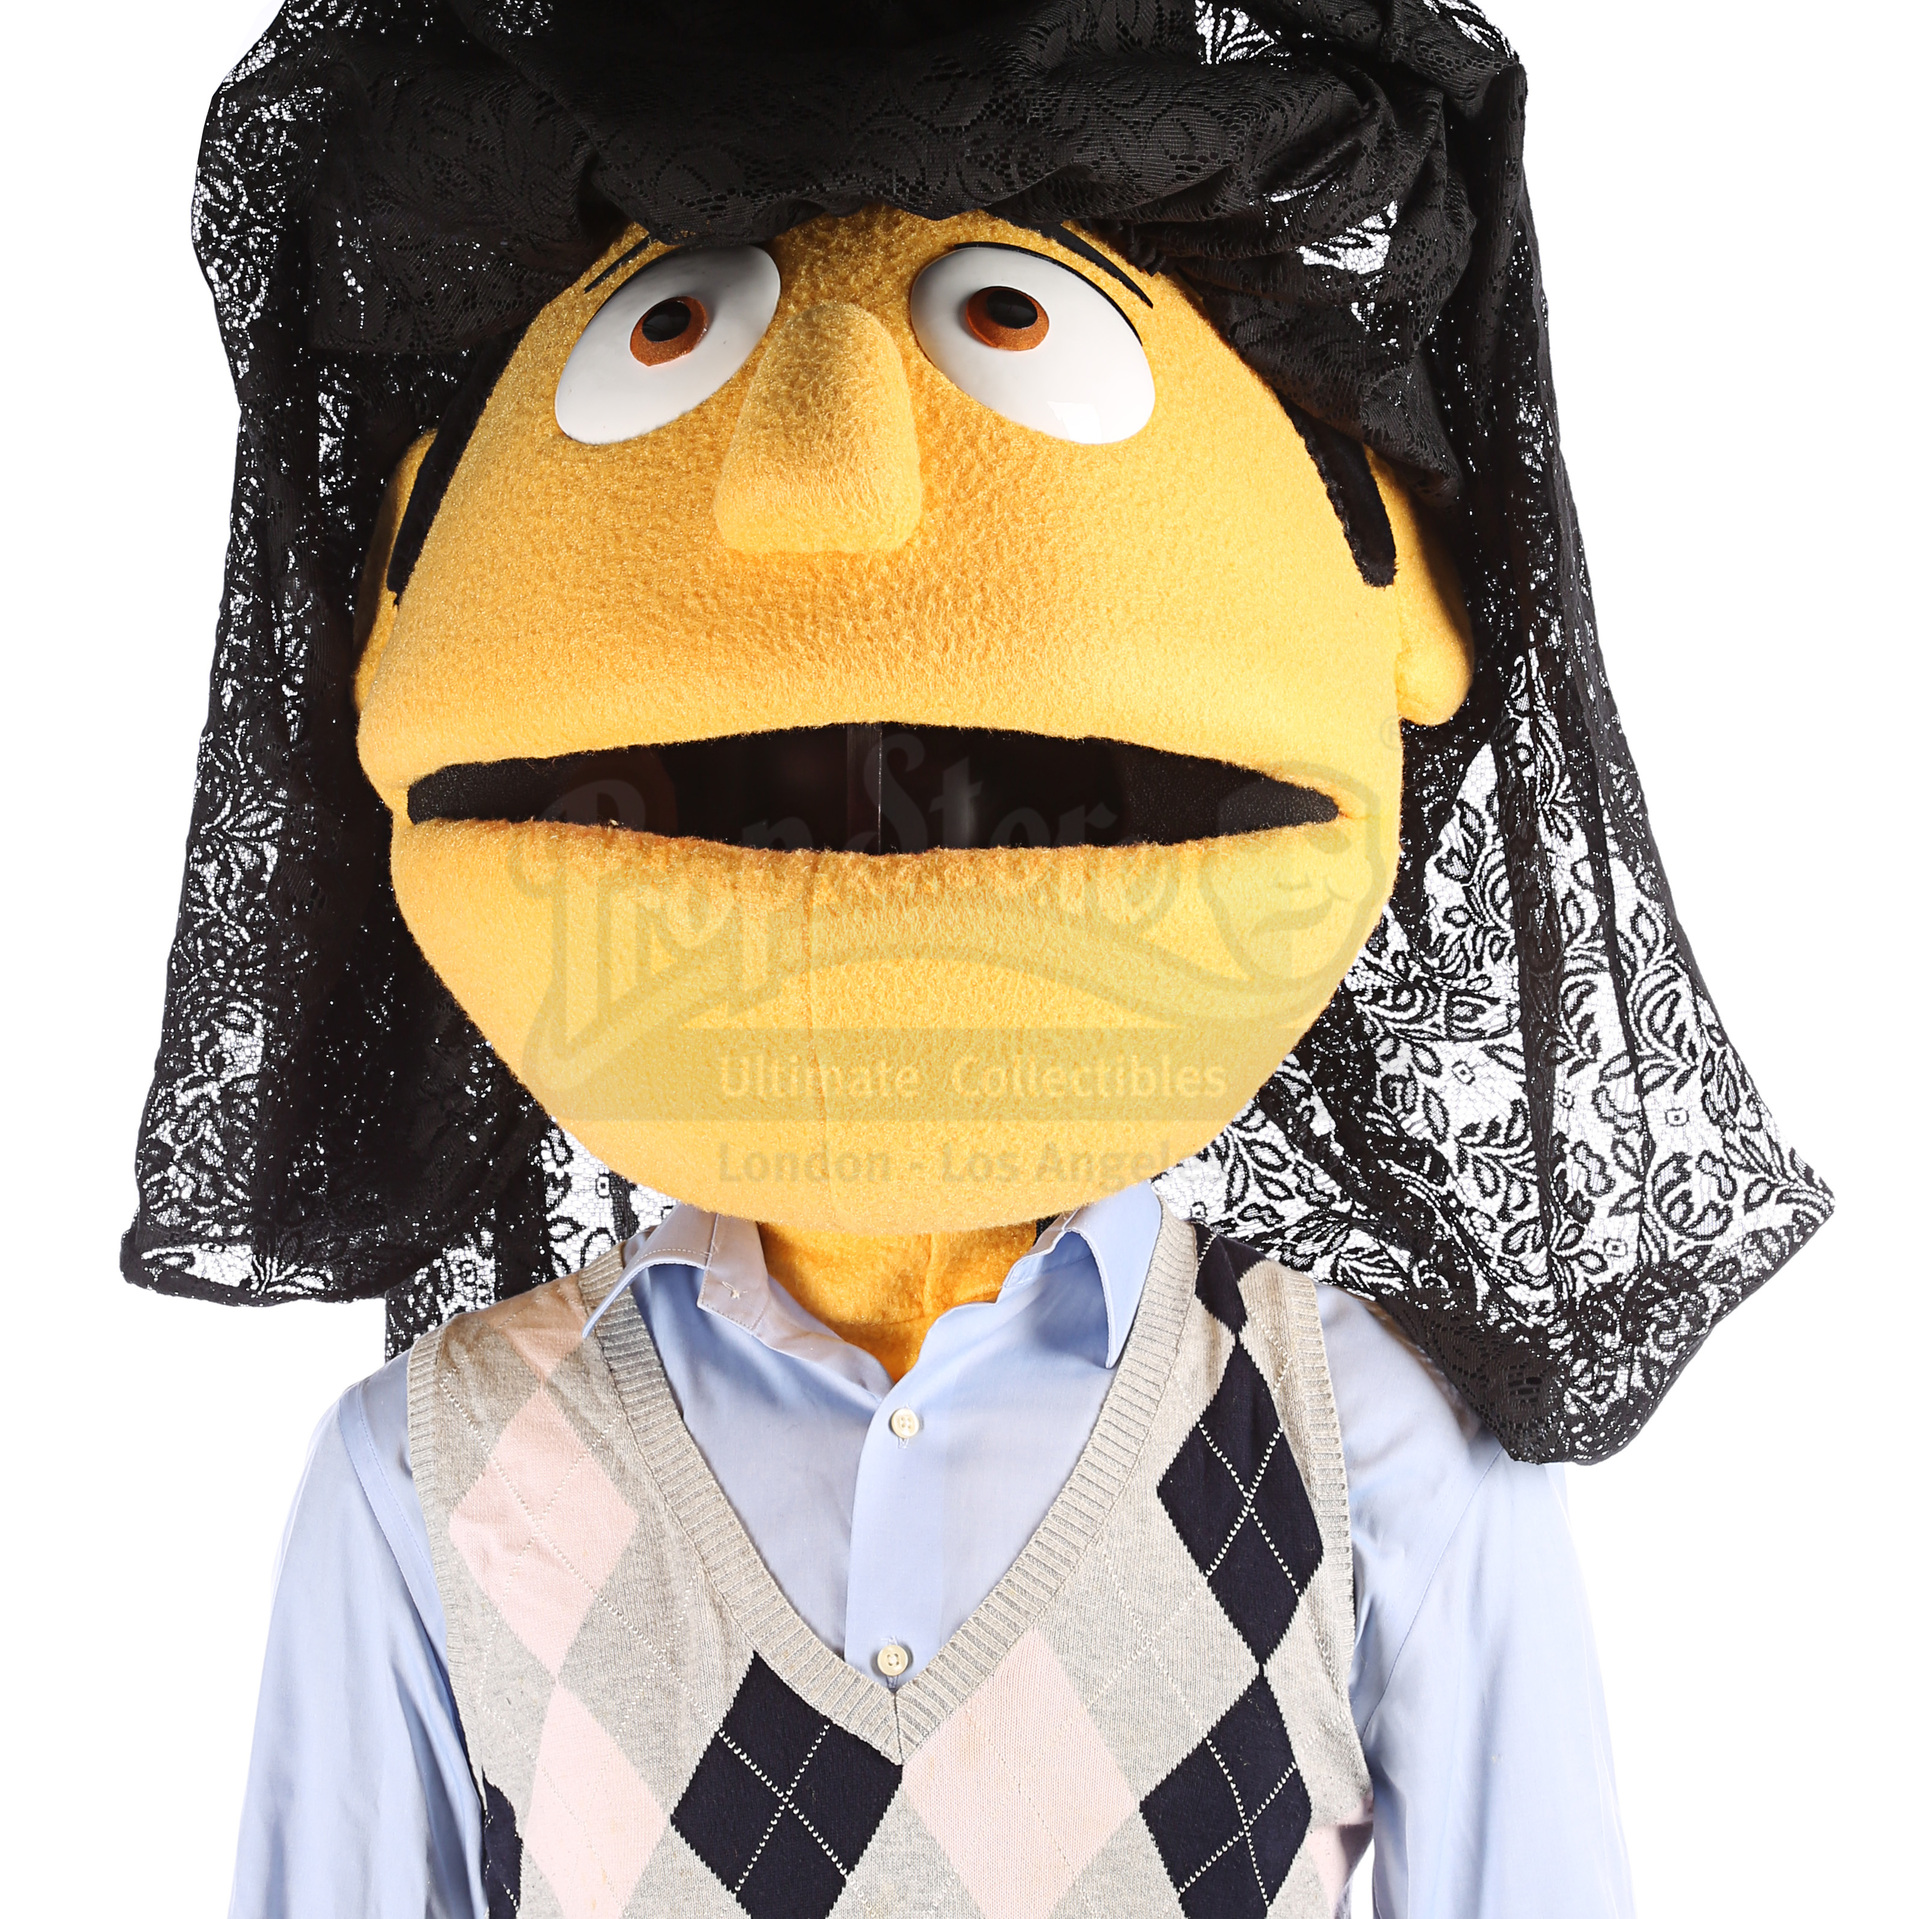 AVENUE Q (STAGE SHOW) - Wedding Puppet Collection: Kate Monster, Nicky, Princeton, Rod, Kate Monster - Image 22 of 23